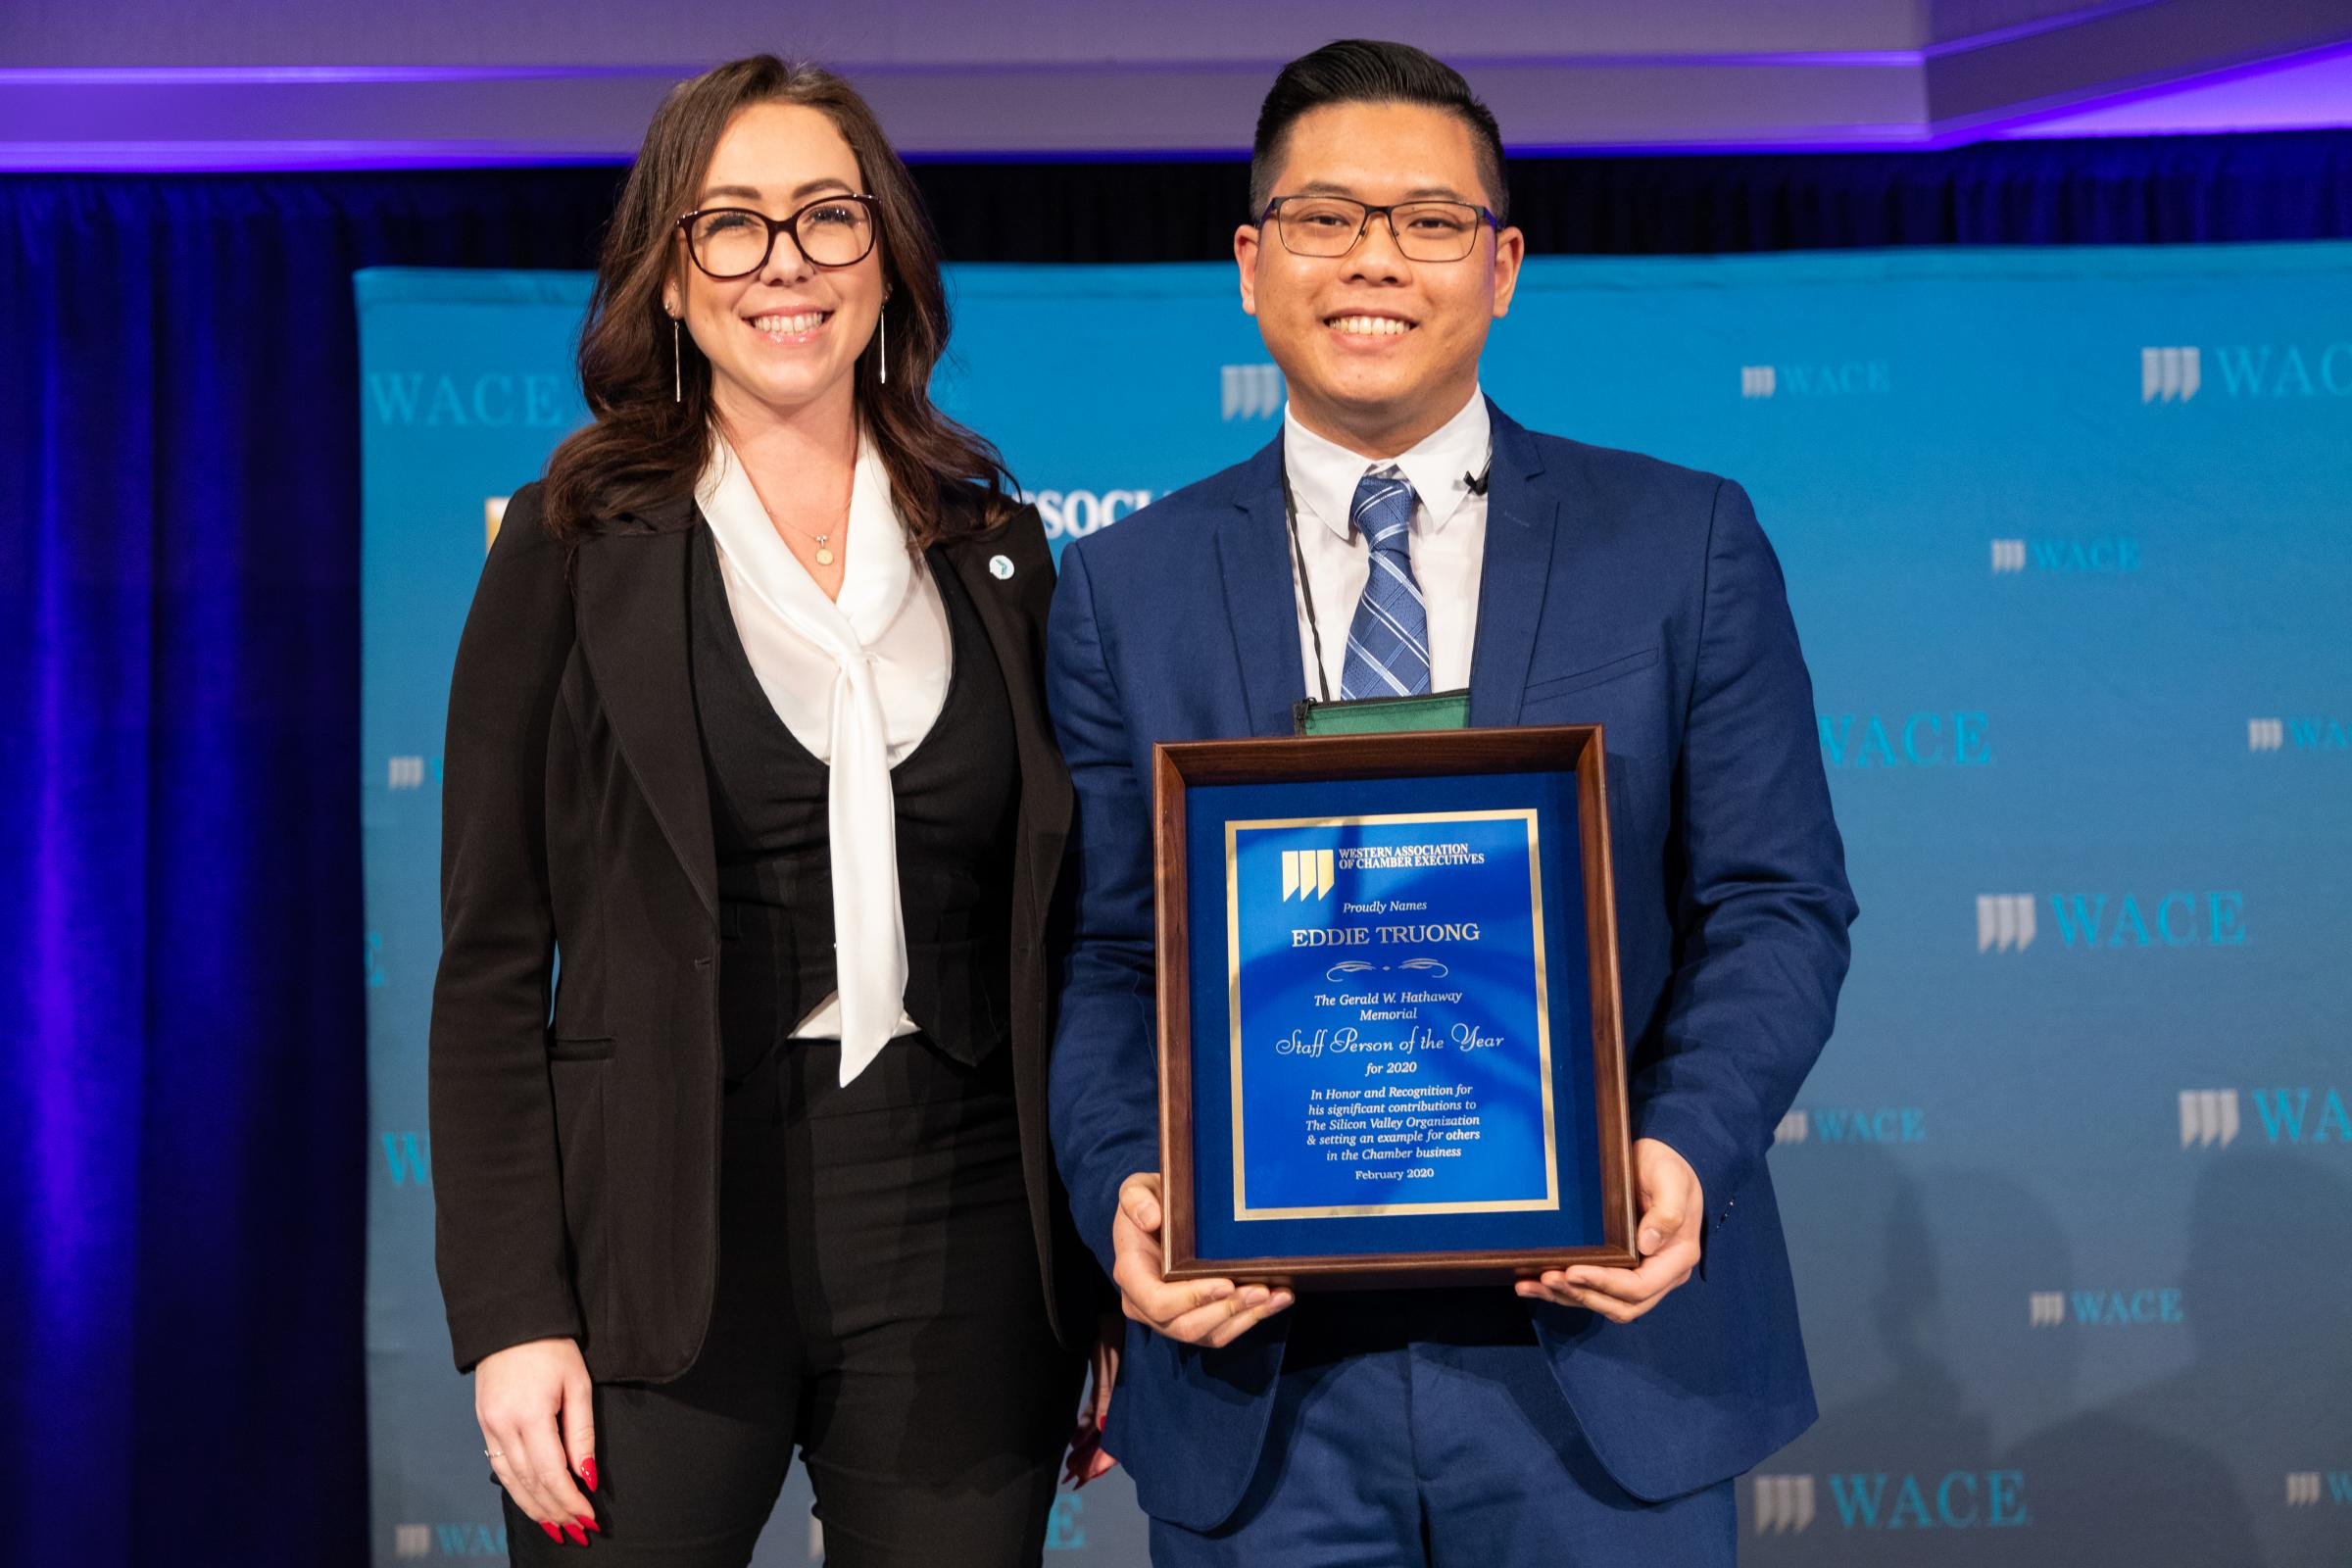 Jessica Welch (left), vice president of operations, Greater Irvine Chamber, presents Eddie Truong (right) the 2020 W.A.C.E. Staff Person of the Year Award.